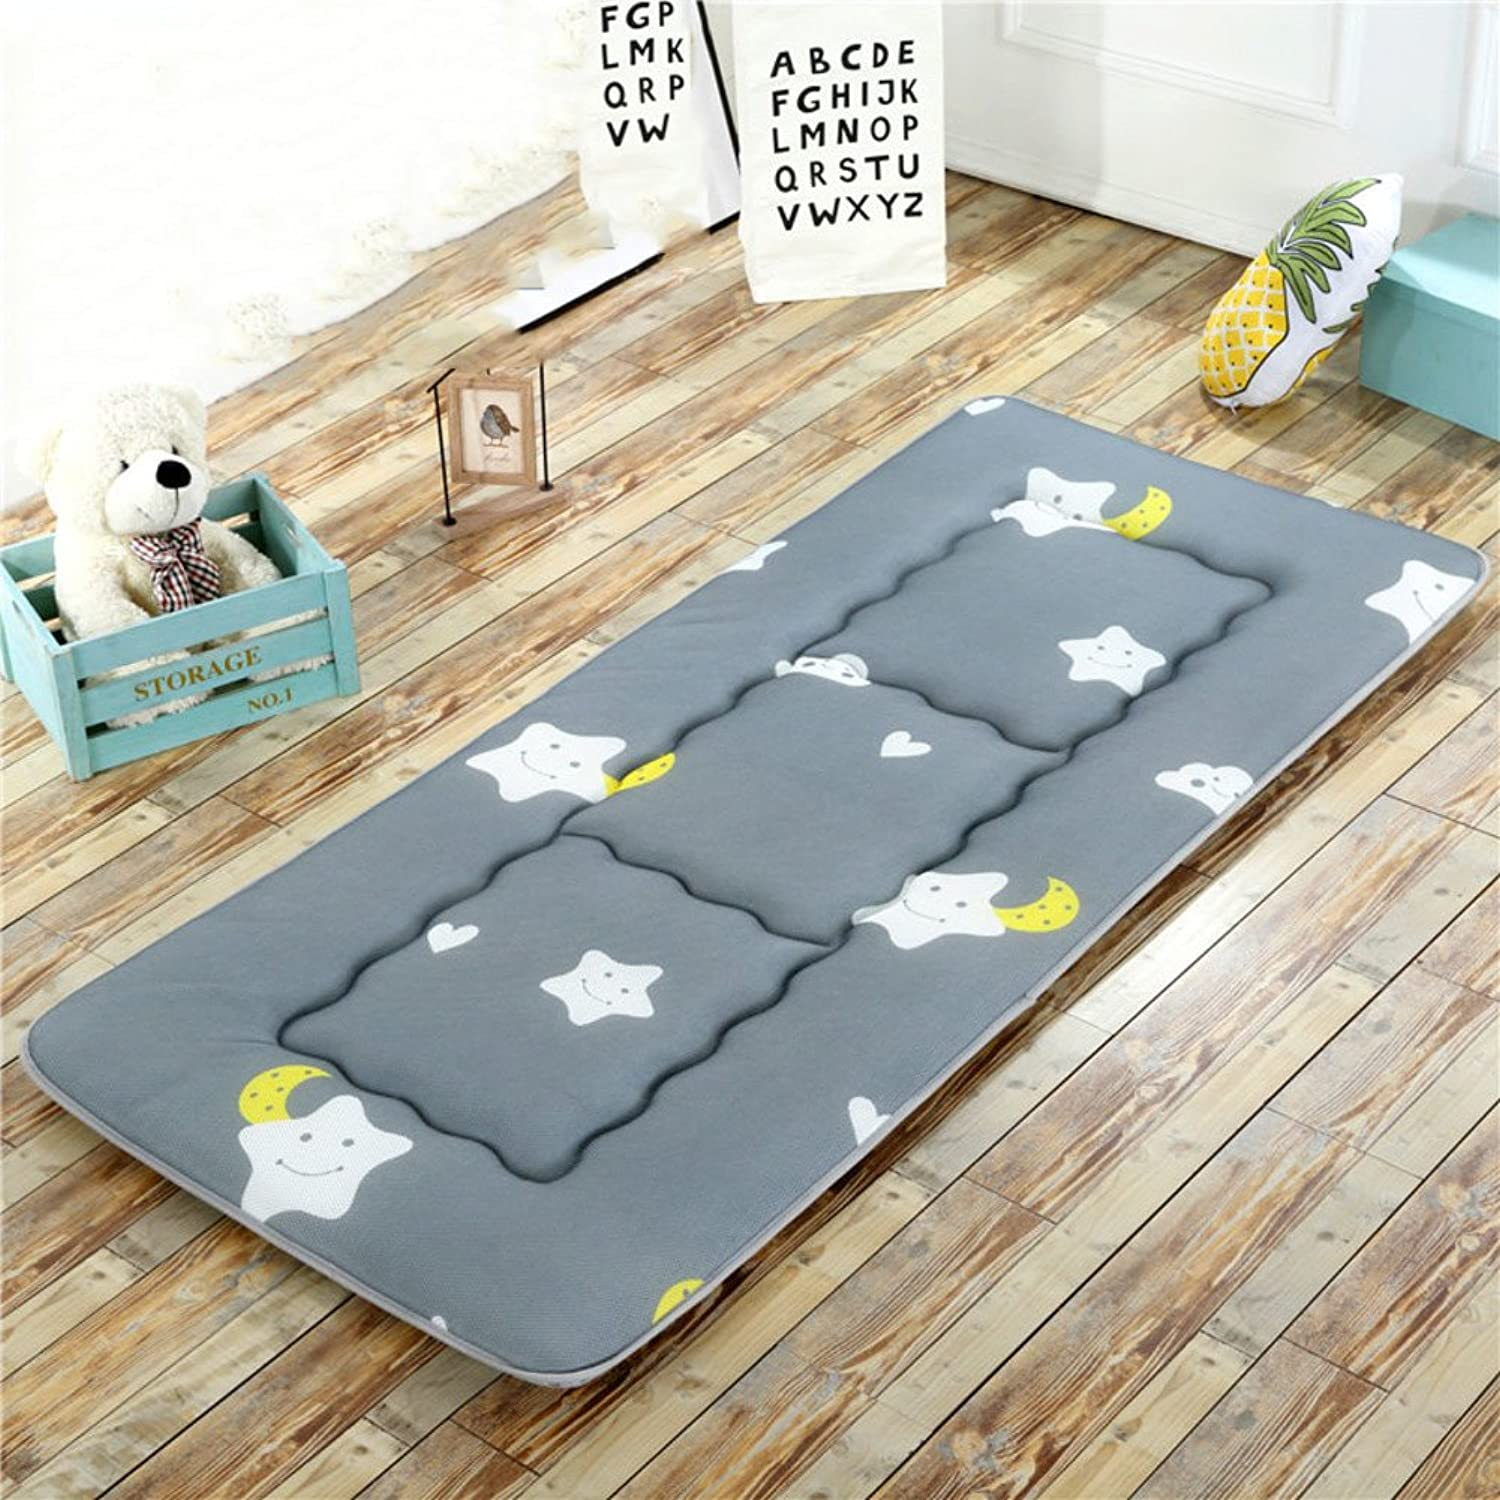 Collapsible Tatami mats Floor mat Cushion,Summer Breathable Pillow Mattress Student Dormitory Bedroom Foldable Sleeping pad Bed Predector-F 180x200cm(71x79inch)